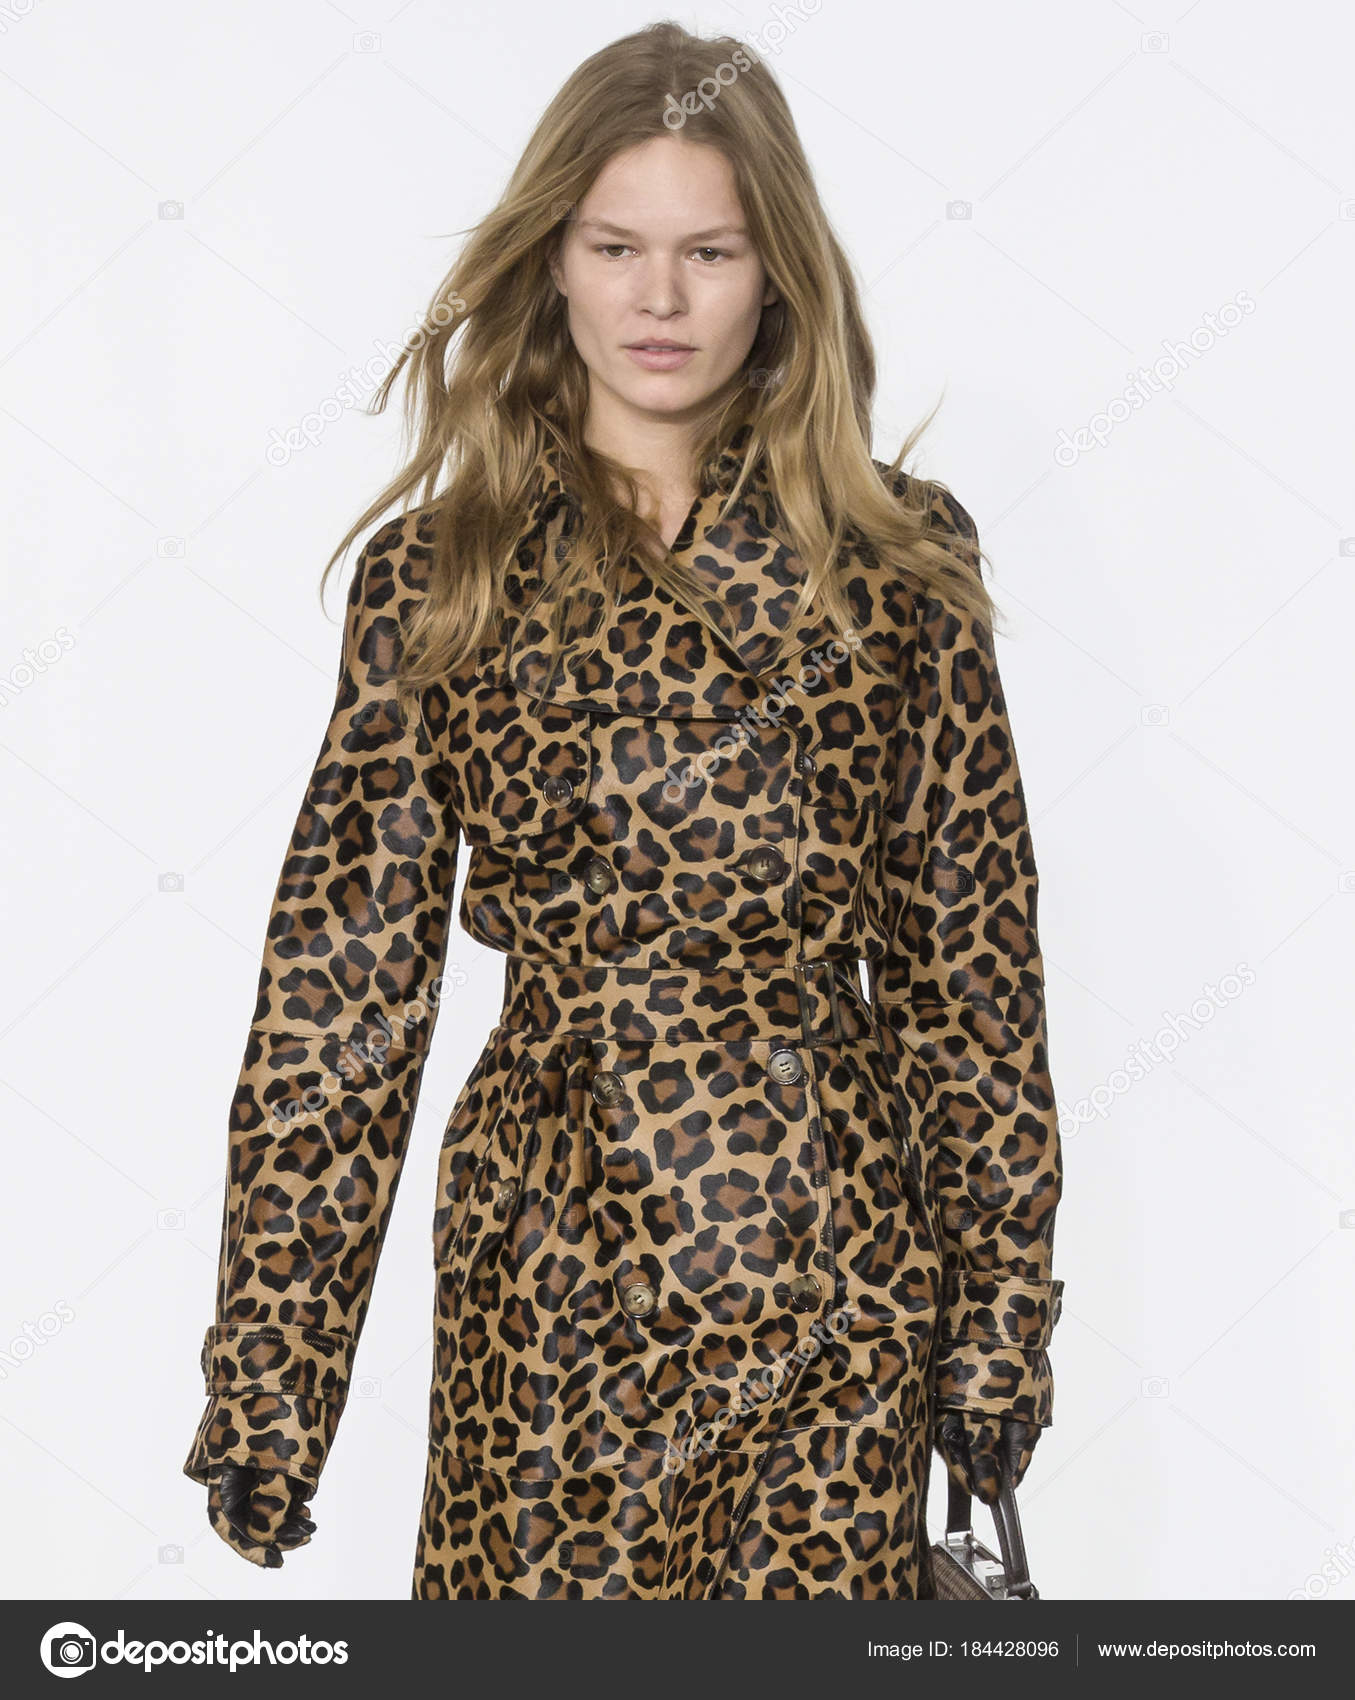 Michael Kors Winter Coats Women Tradingbasis